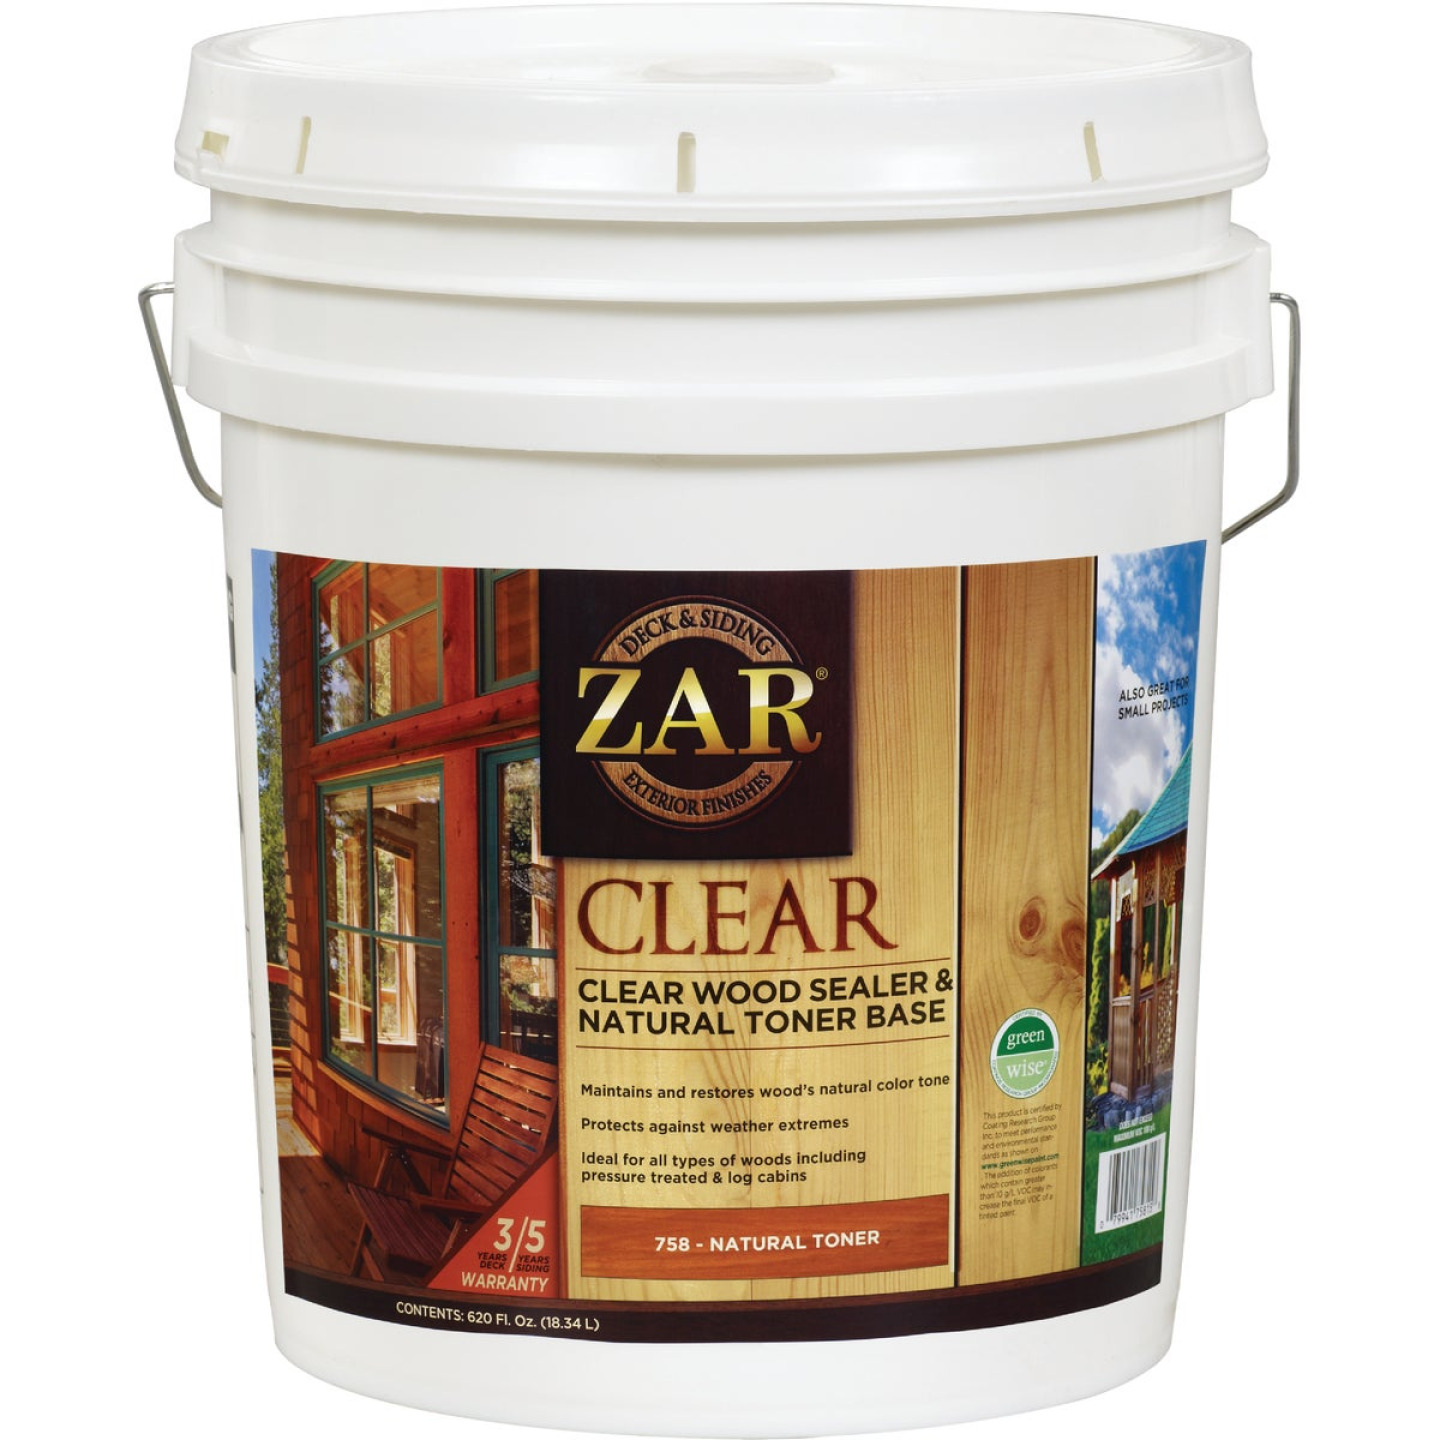 Zar 5 Gal. Deck & Siding Clear Wood Sealer & Stain Image 1